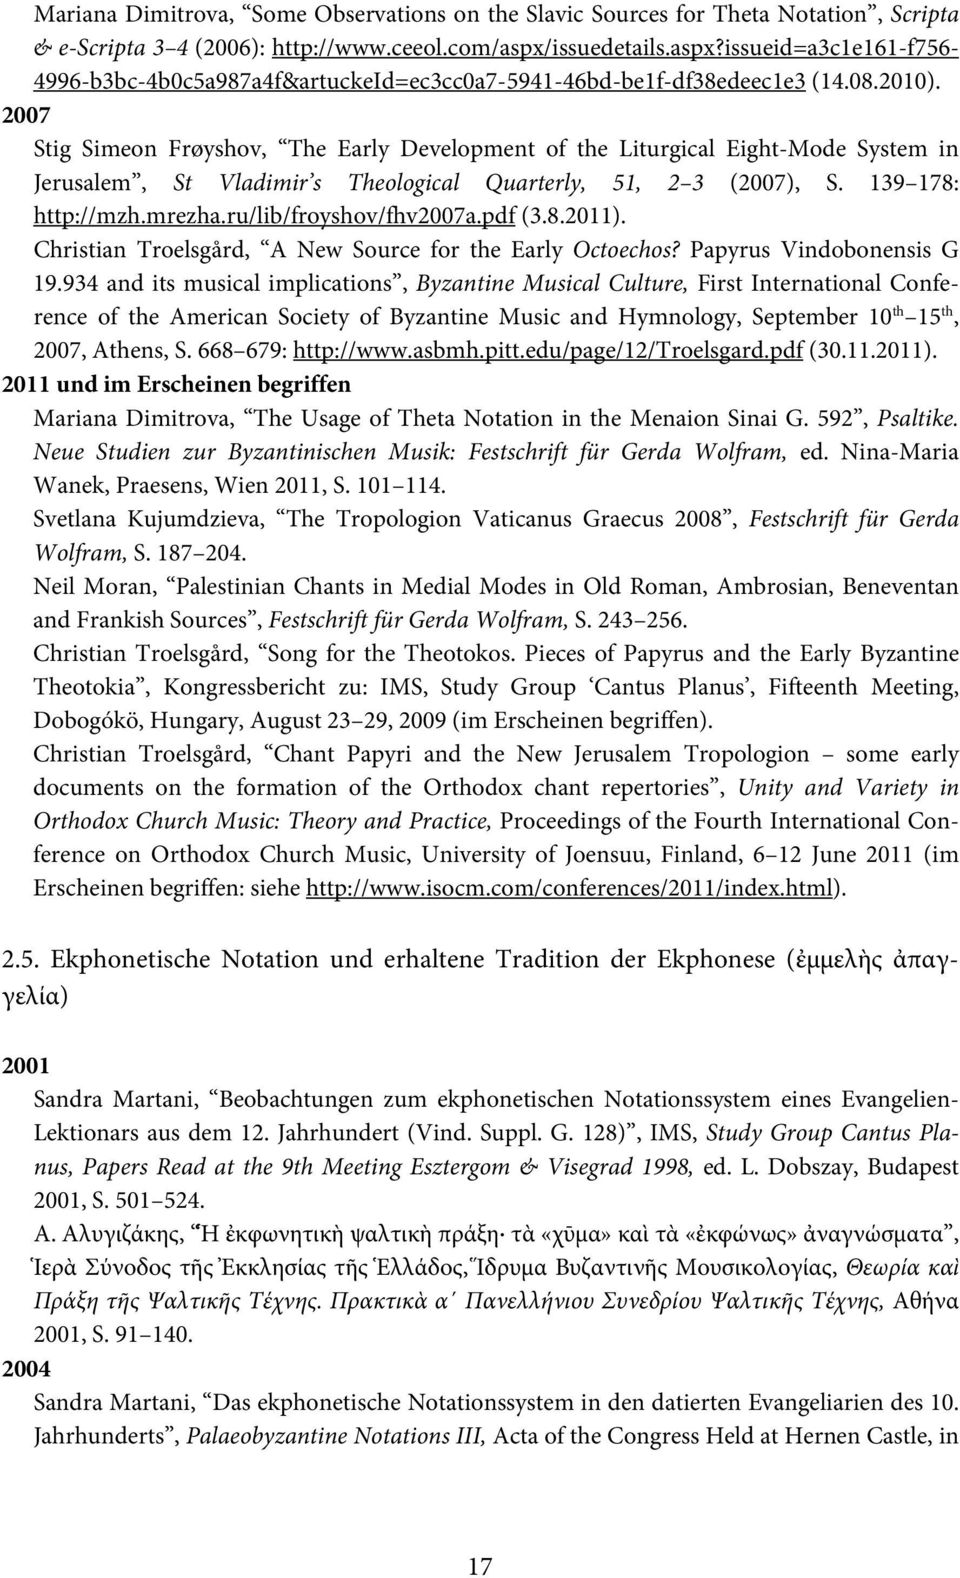 2007 Stig Simeon Frøyshov, The Early Development of the Liturgical Eight-Mode System in Jerusalem, St Vladimir s Theological Quarterly, 51, 2 3 (2007), S. 139 178: http://mzh.mrezha.